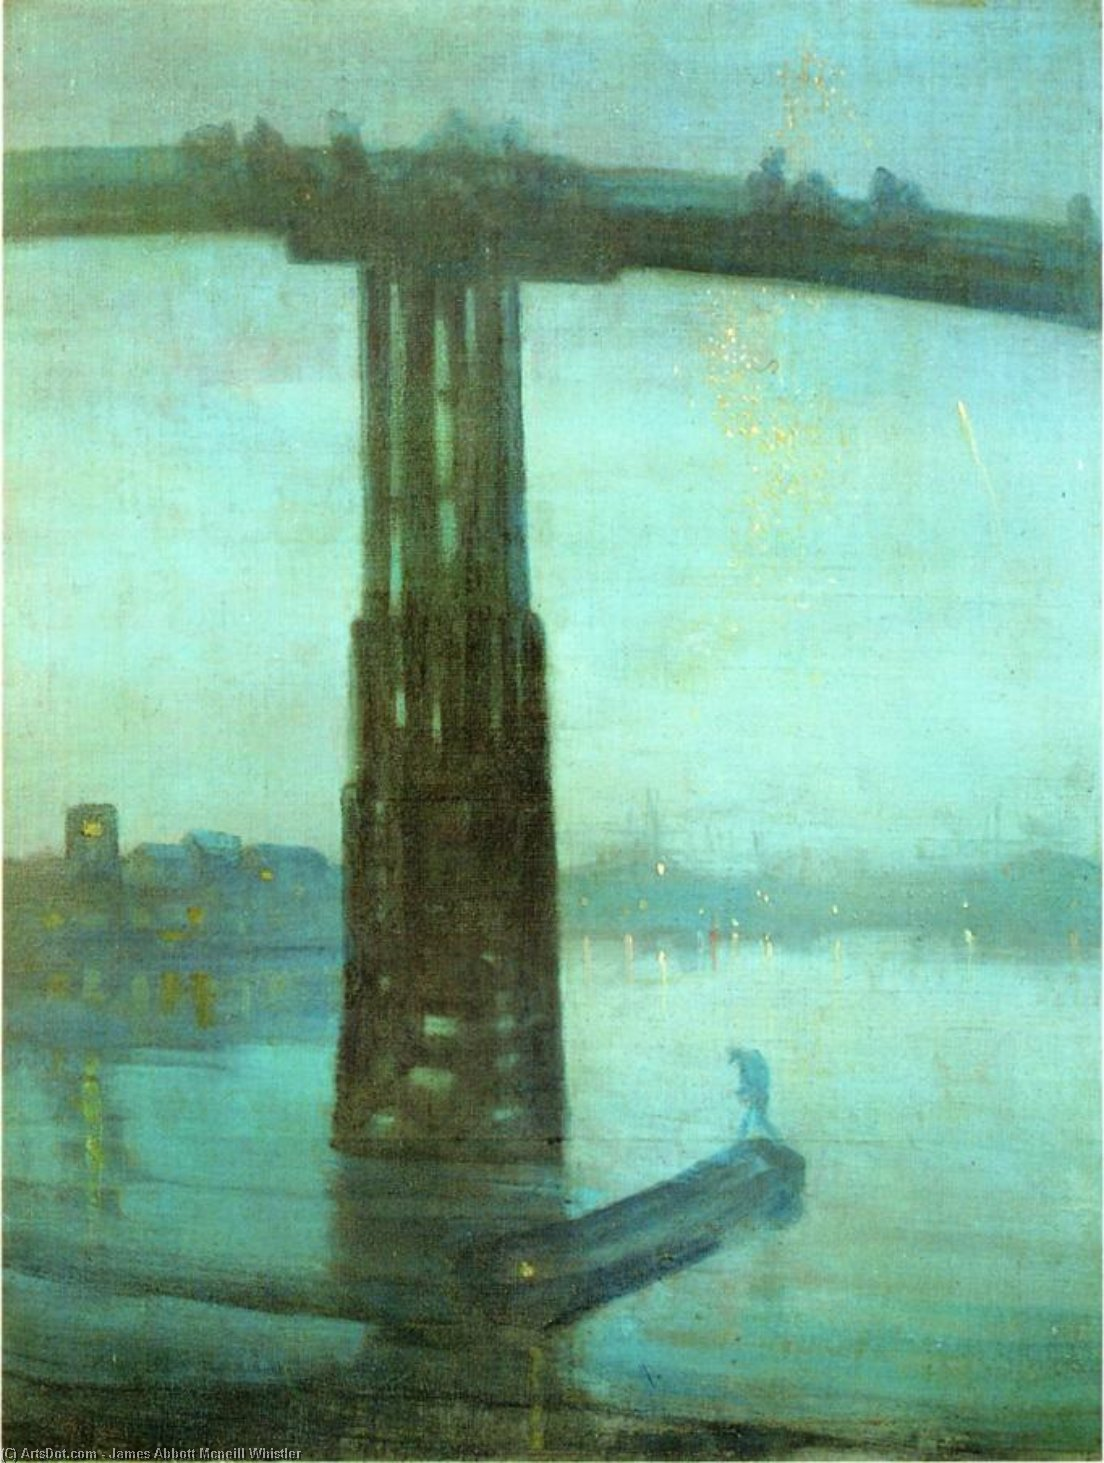 Wikioo.org - The Encyclopedia of Fine Arts - Painting, Artwork by James Abbott Mcneill Whistler - Nocturne: Blue and Gold - Old Battersea Bridge